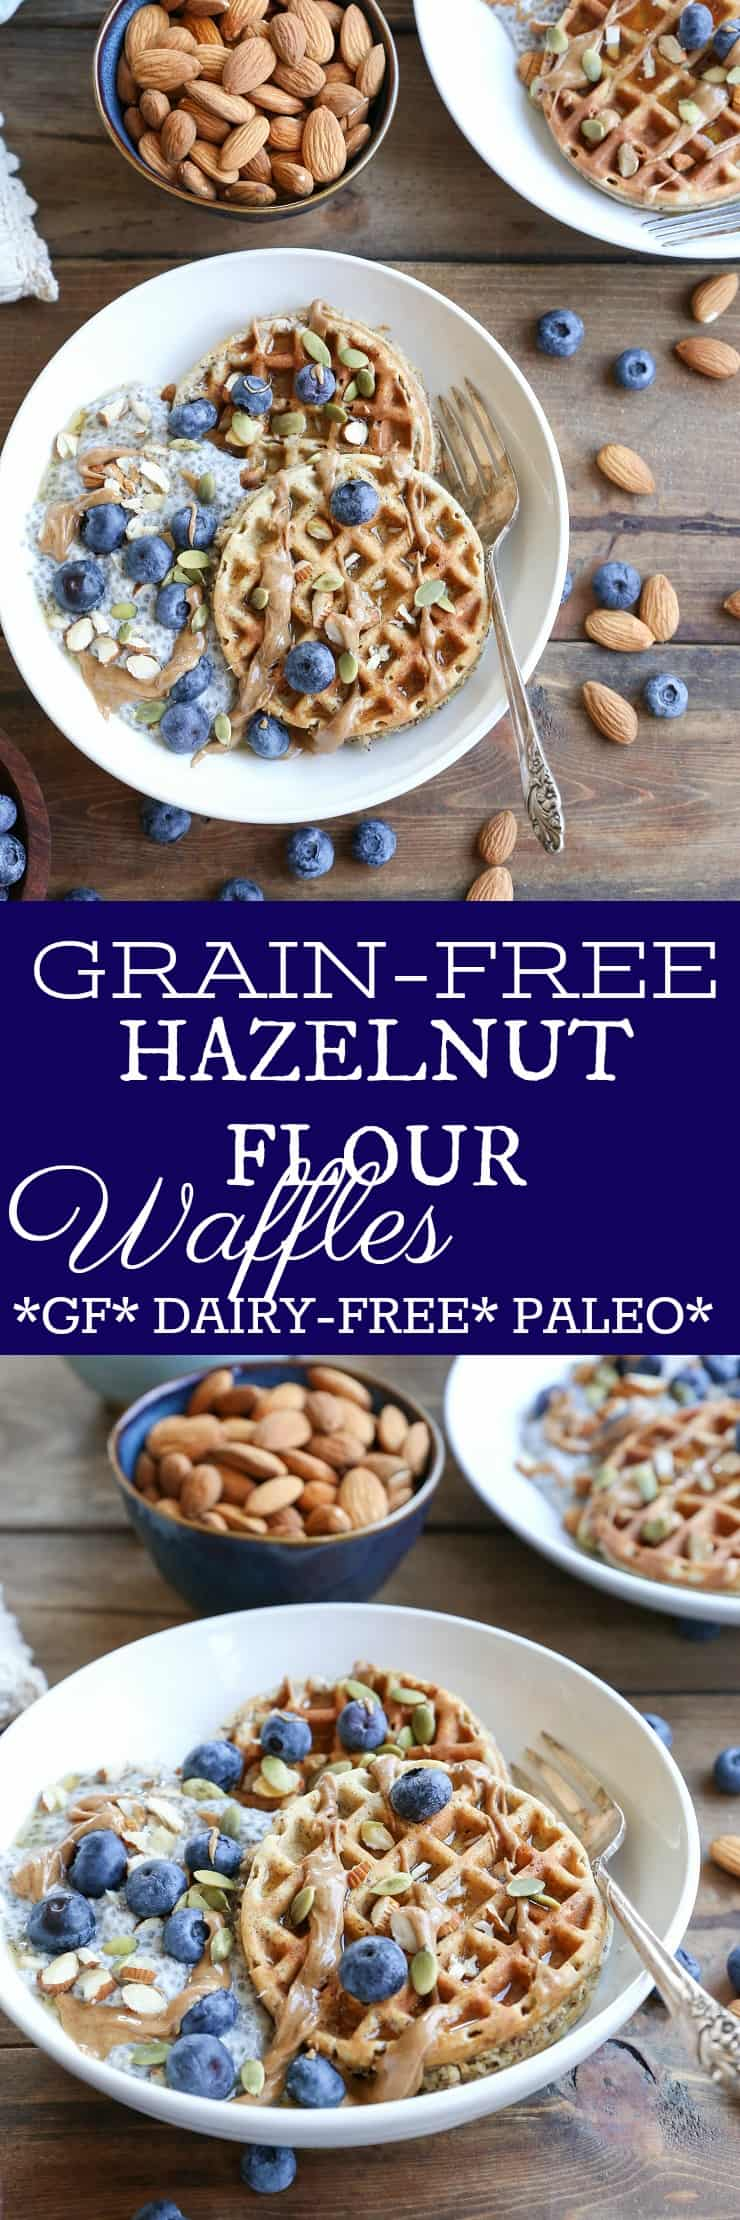 Grain-Free Hazelnut Flour Waffles - dairy-free, gluten-free, and paleo. These easy blender waffles are healthy and quick to prepare!